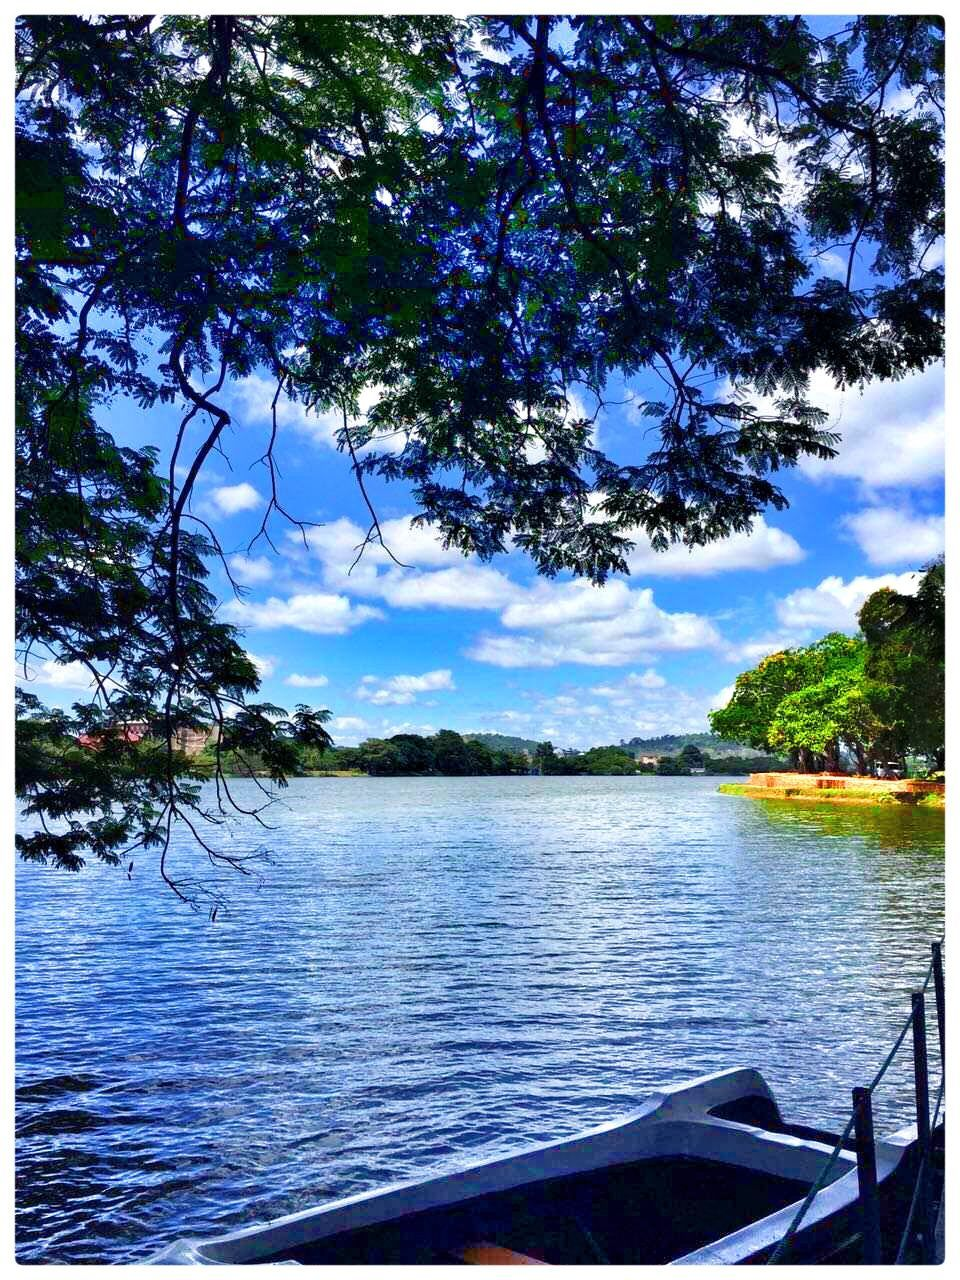 tree, nature, tranquility, water, beauty in nature, no people, tranquil scene, scenics, sky, day, outdoors, lake, branch, nautical vessel